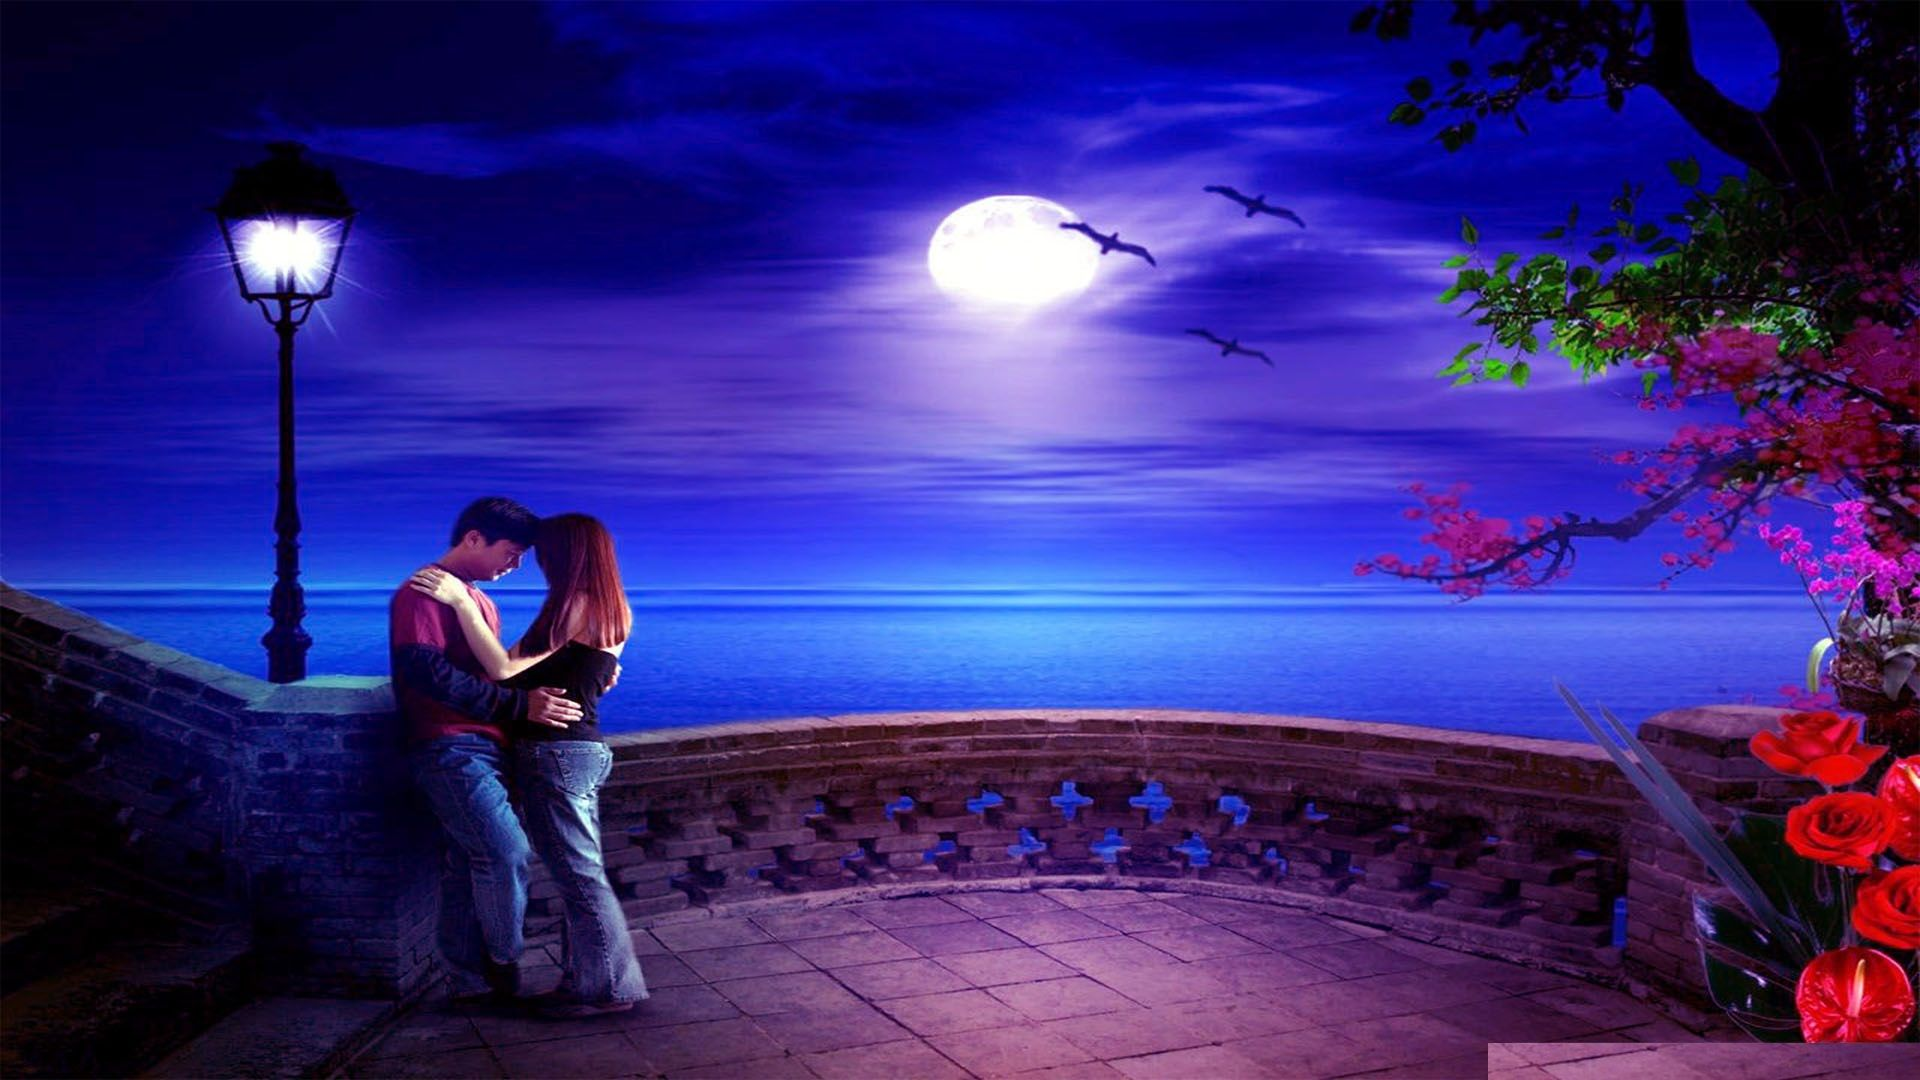 Hd Wallpaper Of Love For Mobile : Romantic Love HD Wallpapers : Find best latest Romantic Love HD Wallpapers for your Pc desktop ...